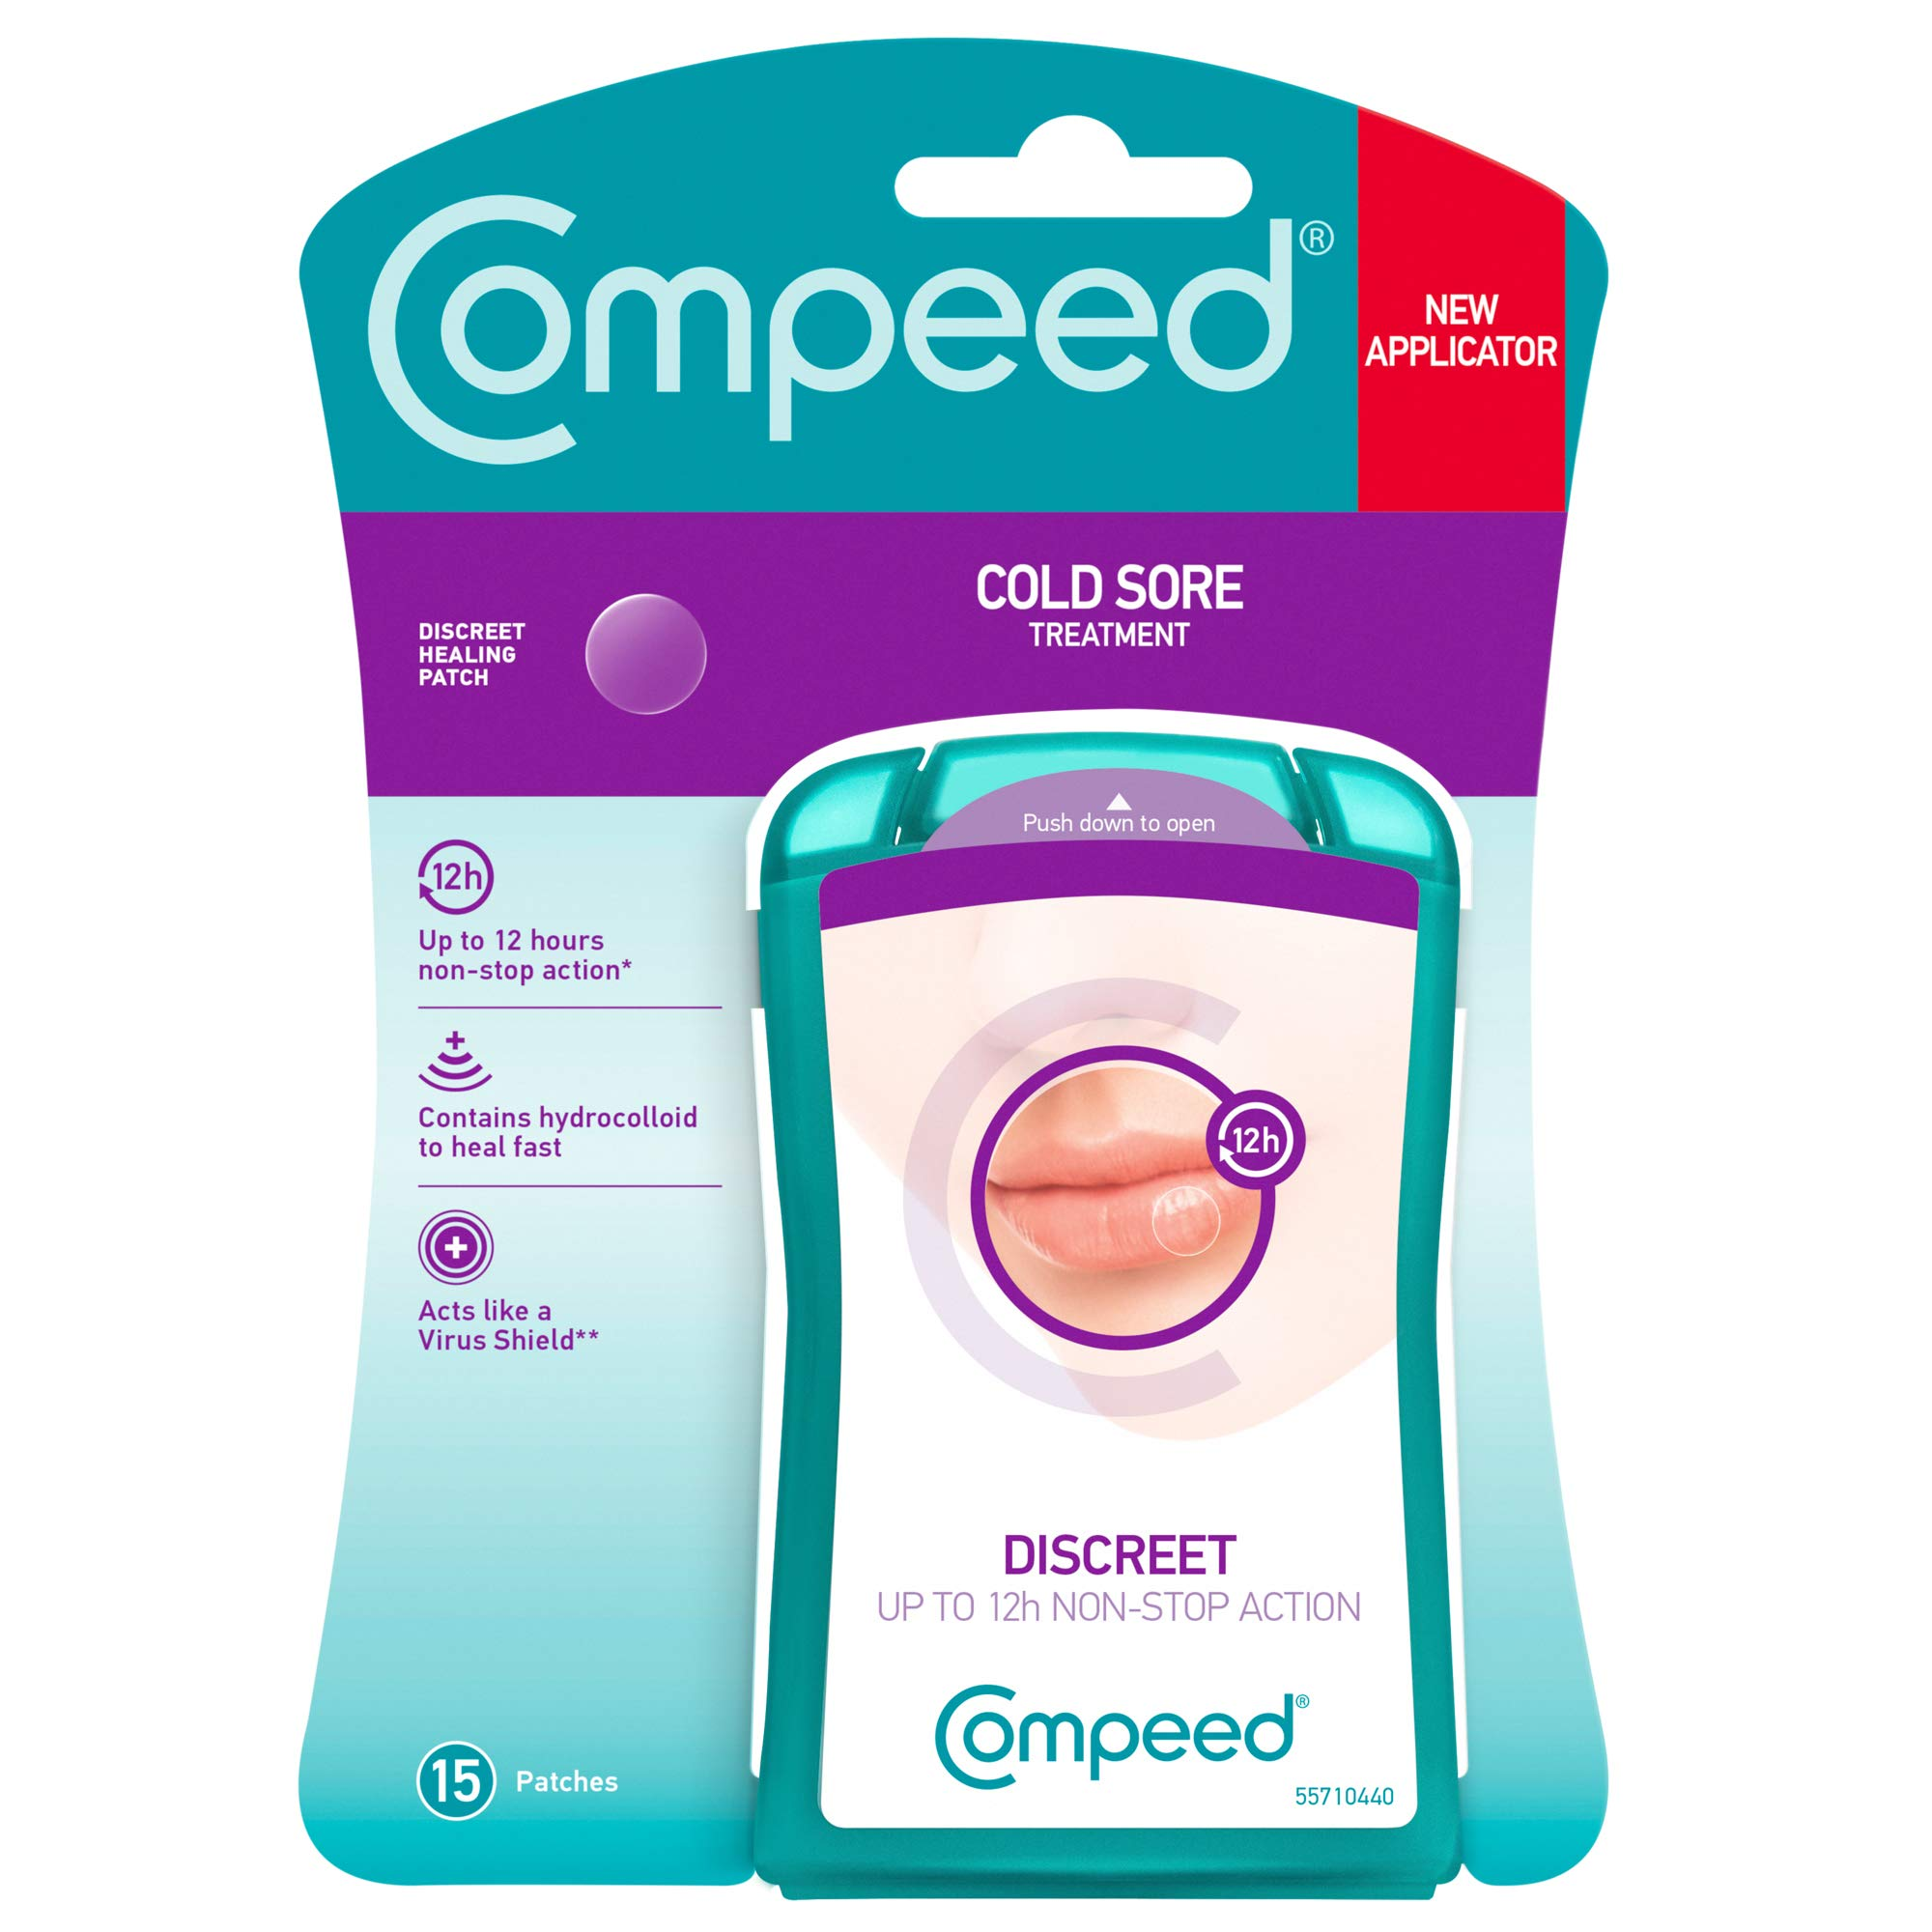 Compeed Cold Sore Patch 30 Patches ( Of 15 Patches) 2 Packs